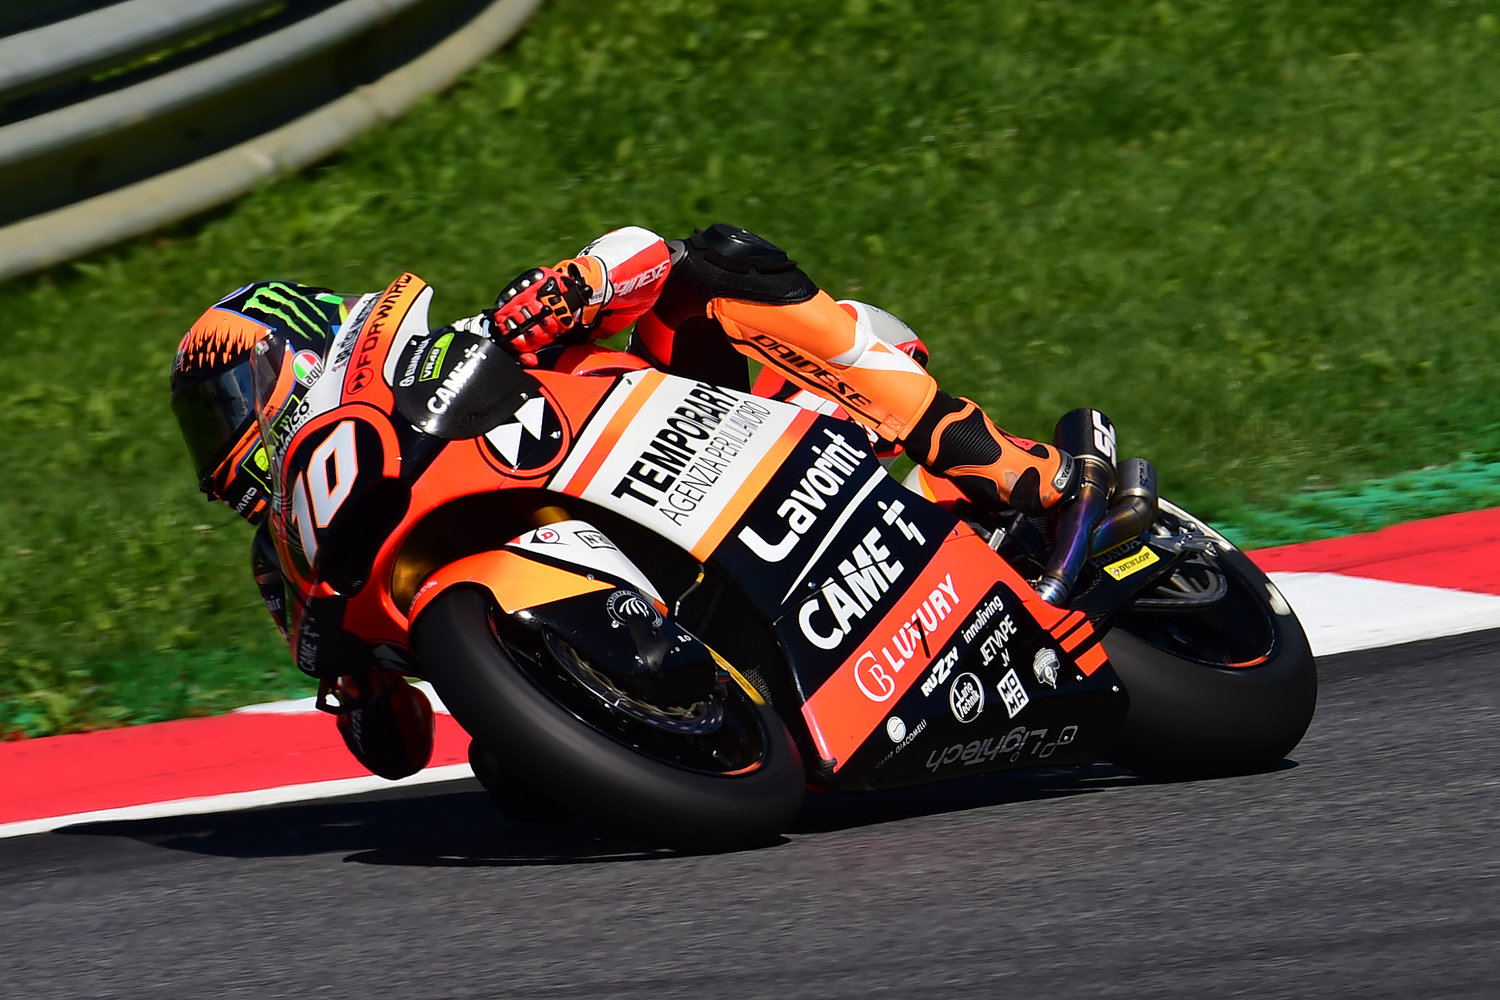 Forward Racing Team completes positive day of testing in Austria